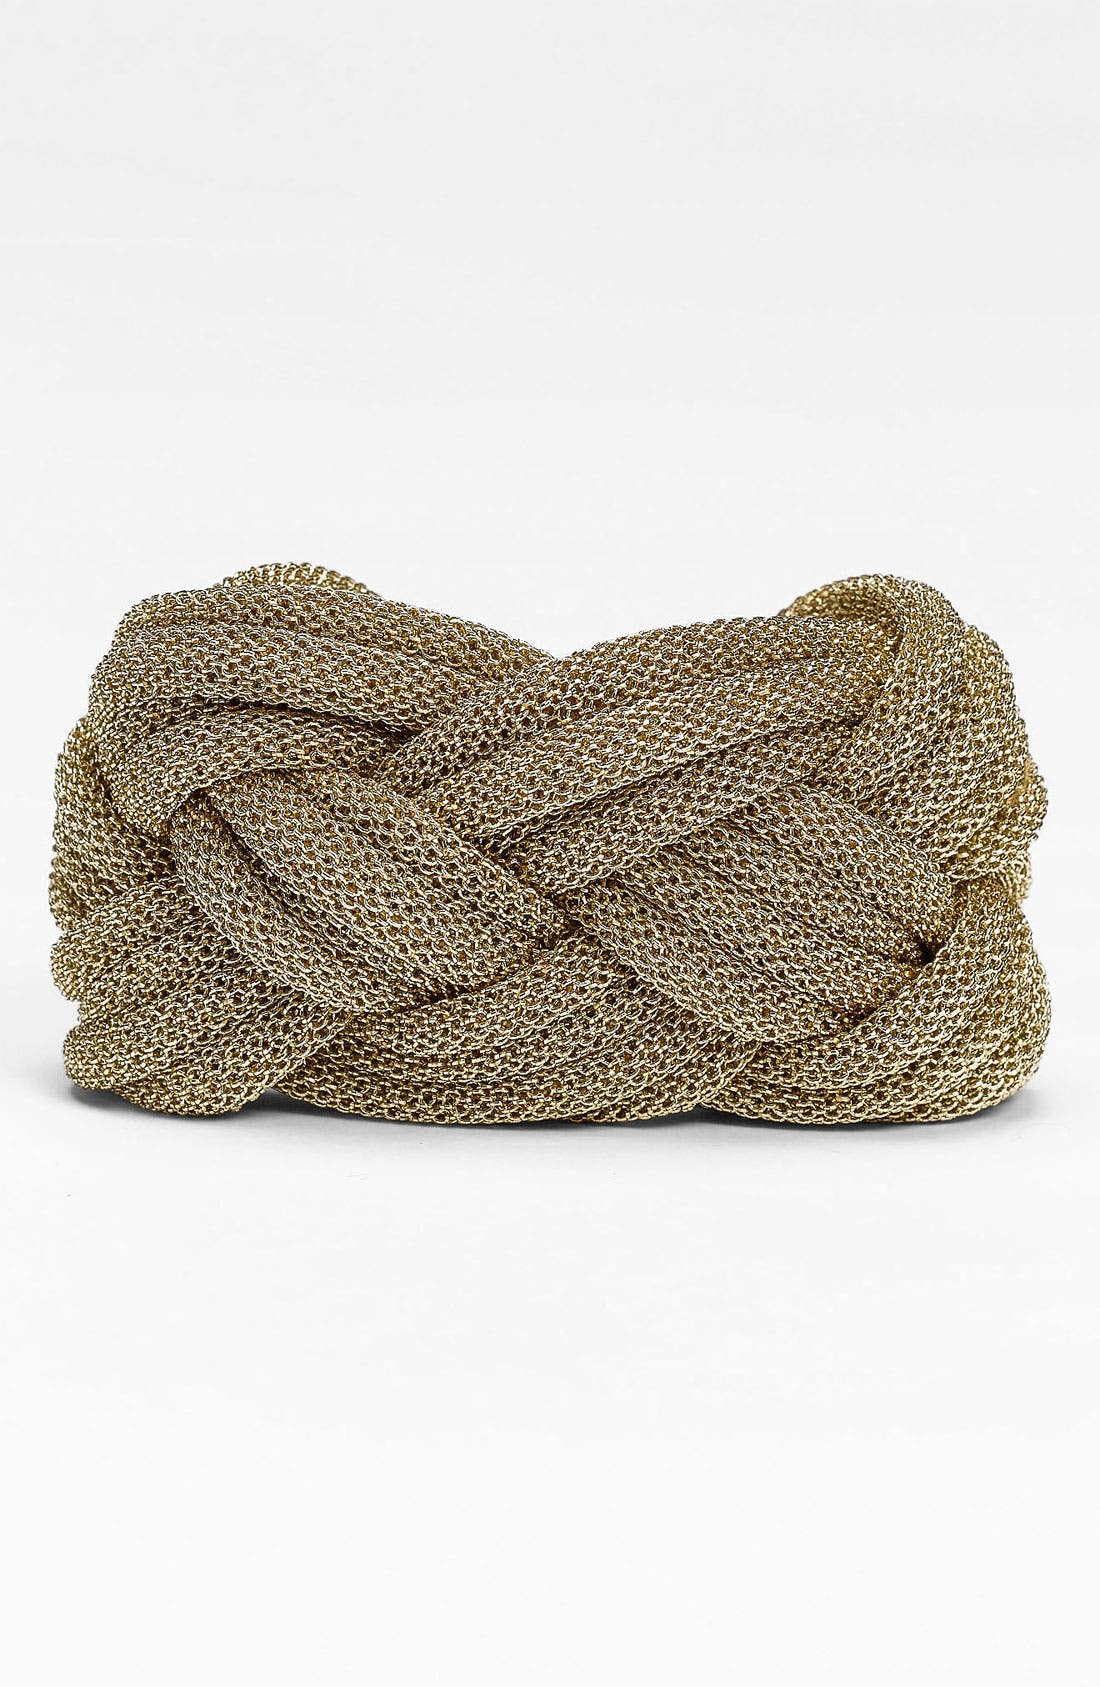 Alternate Image 1 Selected - Adami & Martucci 'Mesh' Large Braided Bracelet (Nordstrom Exclusive)